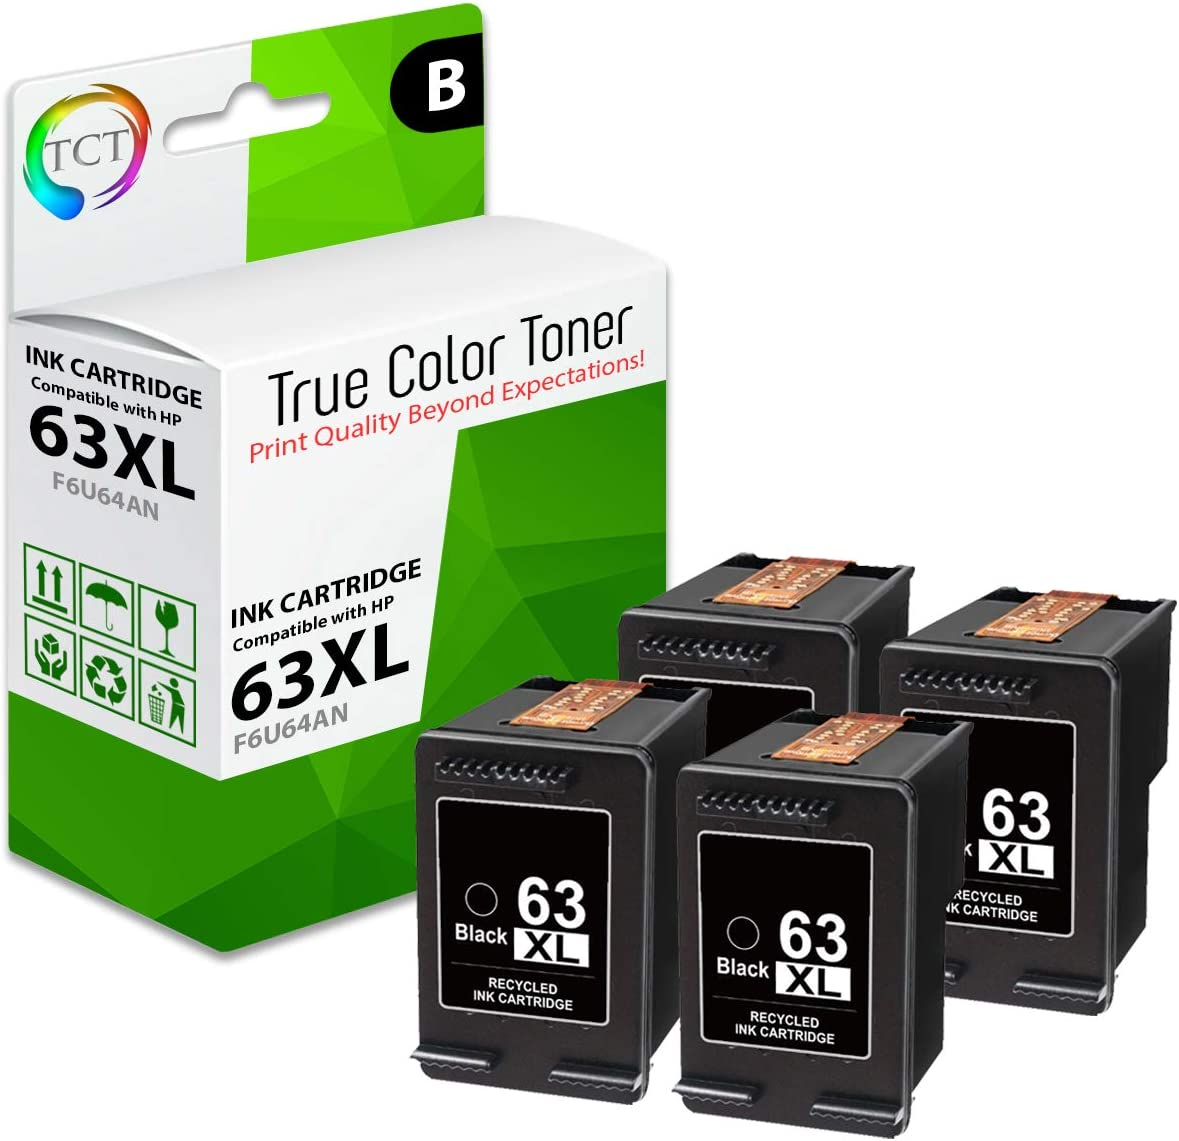 6 Black F6U64AN, 4 Tri-Color F6U63AN Envy 4520 TCT Compatible Ink Cartridge Replacement for HP 63XL 63 XL Works with HP Deskjet 1112 - 10 Pack Officejet 3830 Printers